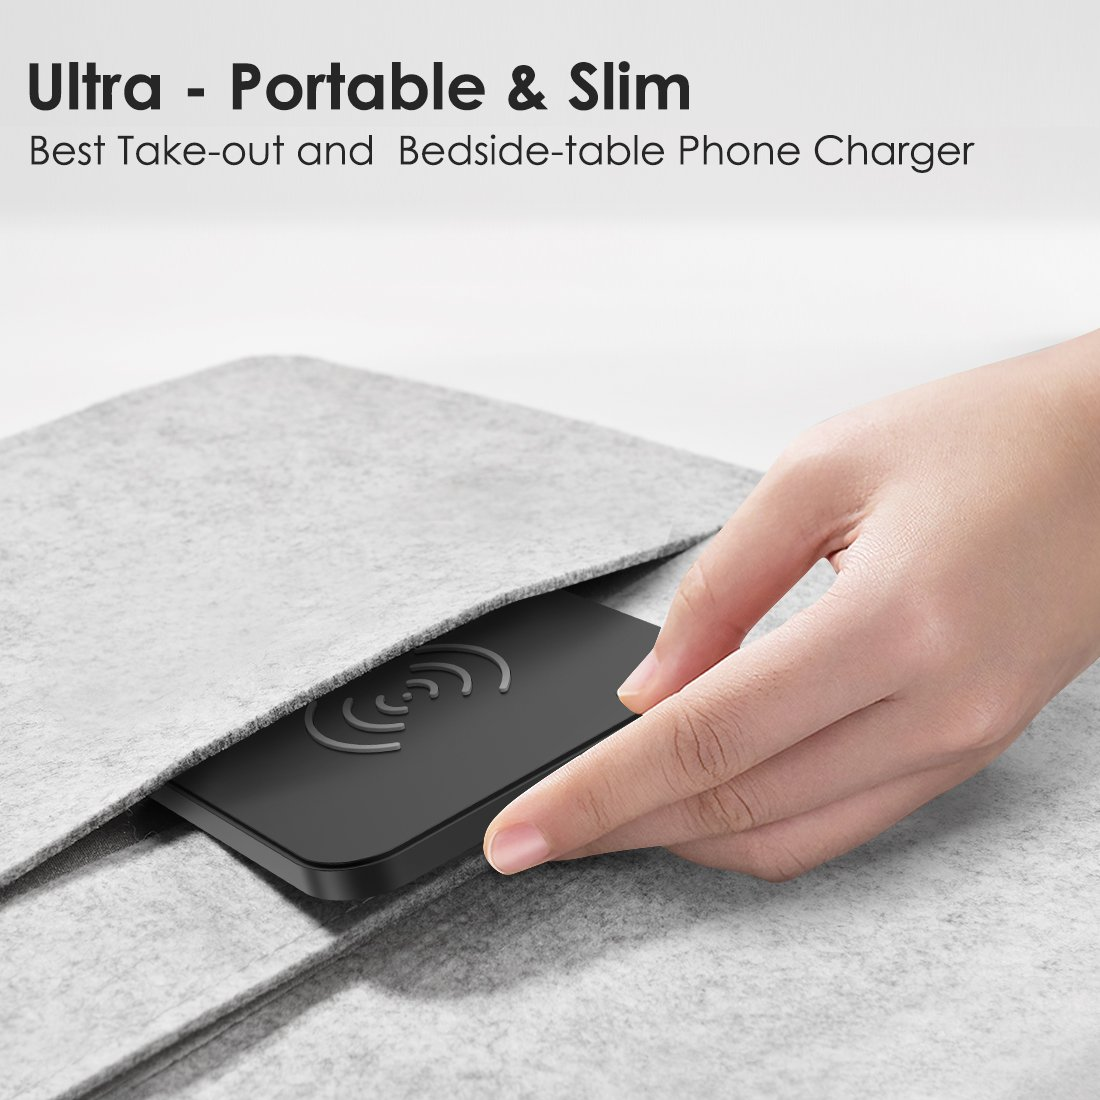 CHOETECH 10W Fast Wireless Charger Compatible Samsung Galaxy S9, S9 S8 Plus,Note 8, S8, S7, S7 Edge, Standard Wireless Charging Pad Compatible iPhone X, 8, 8 Plus (No AC Adapter) by CHOETECH (Image #6)